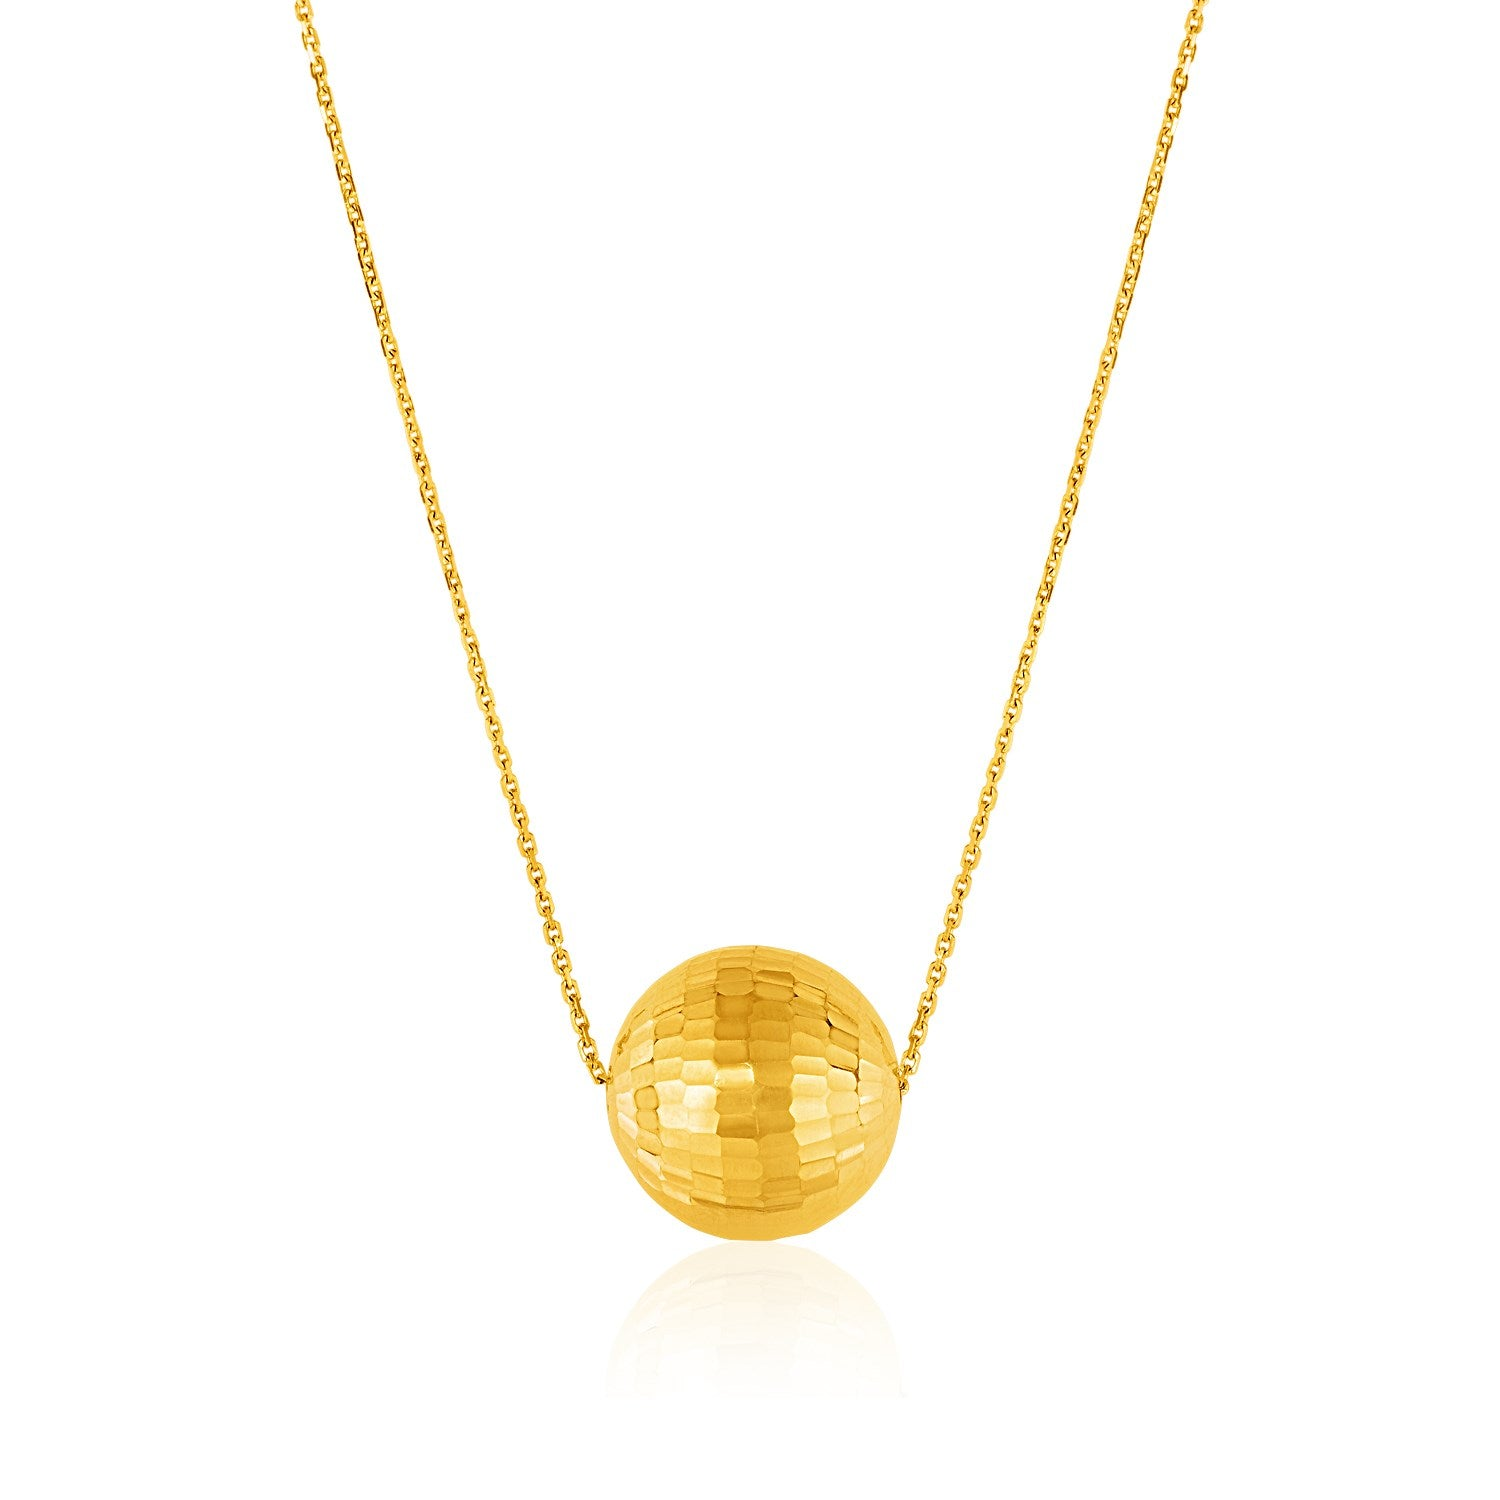 Unique Hollywood Style 14K Yellow Gold Necklace with Faceted Ball Pendant